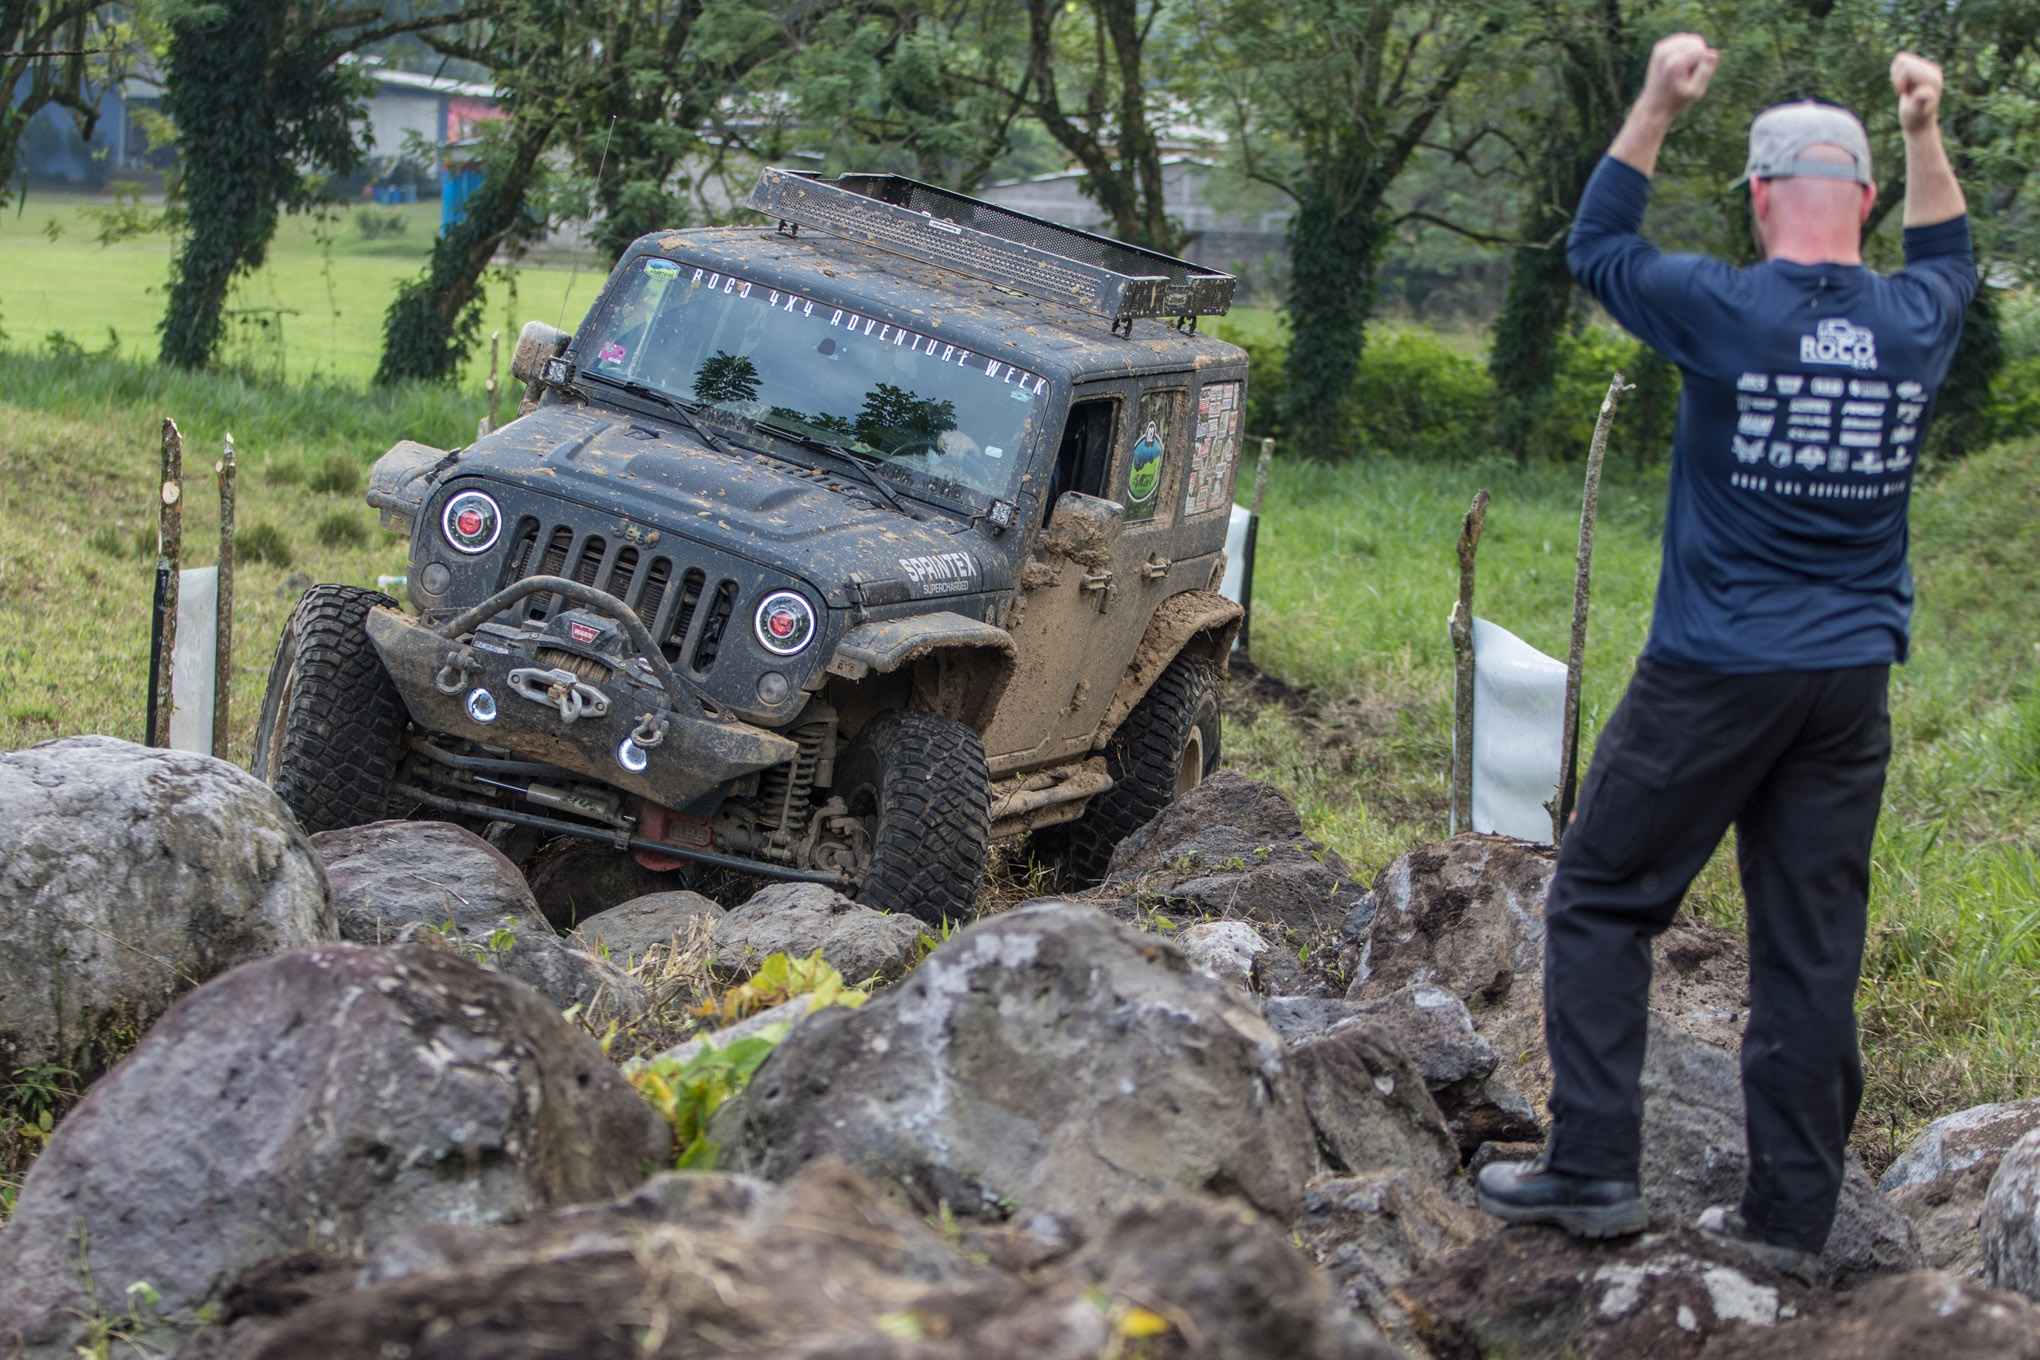 Day 3 of RAW ended with a timed tough truck–style event on the shores of Lago Yojoa. Dar Holdsworth spotted Tyrone Jones through the rock garden relatively unscathed, with the only casualty being a damaged rear driveline. Fortunately, they carried a spare for the Sprintex Jeep.